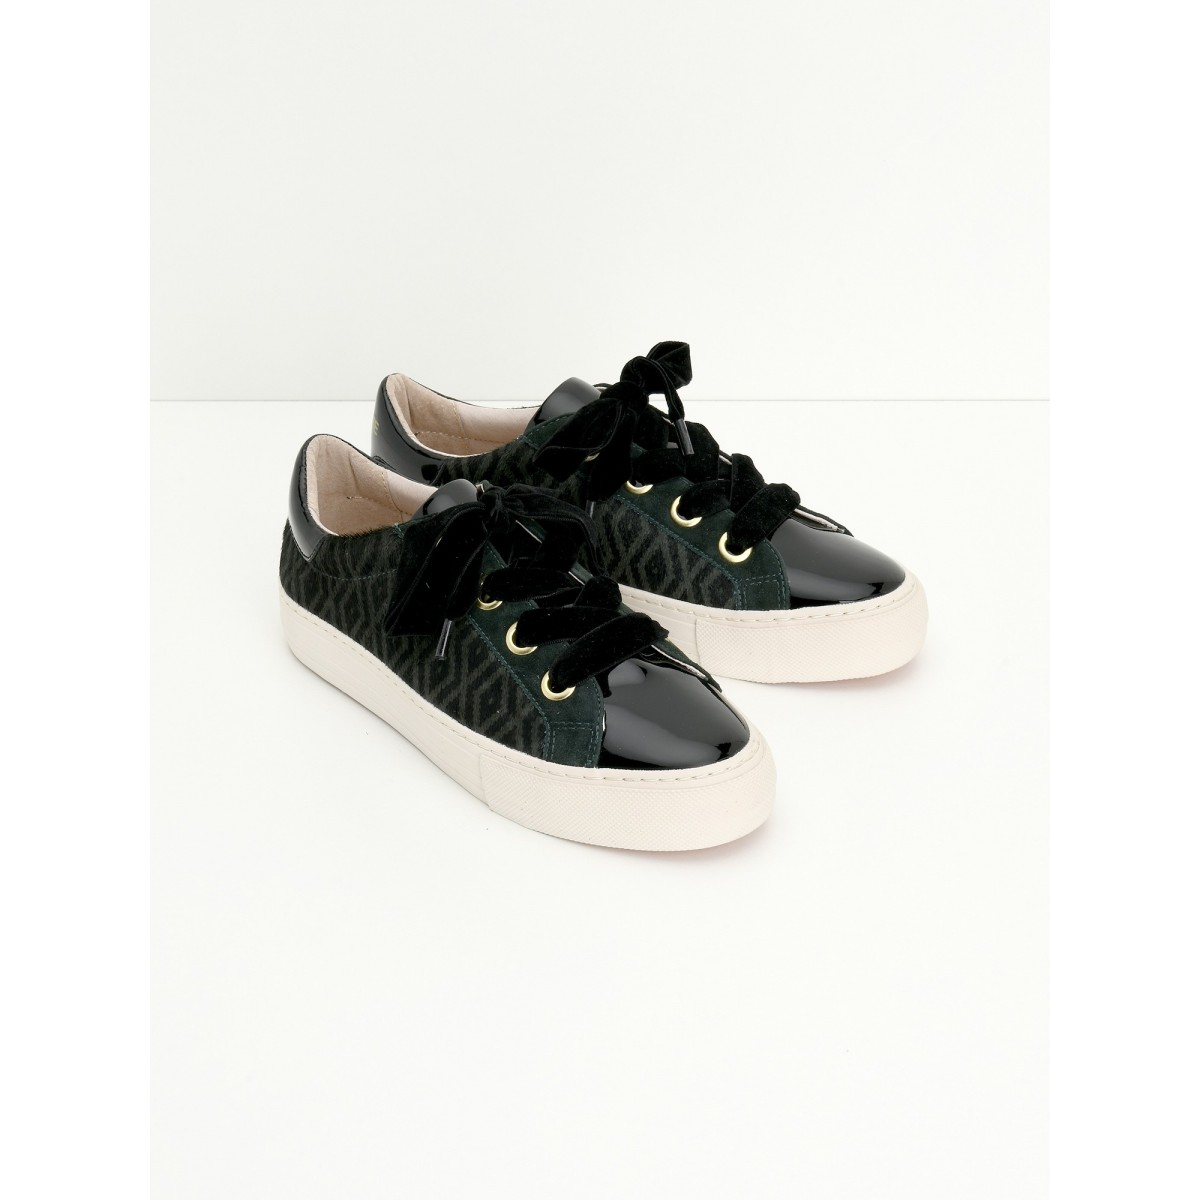 No Name ARCADE NEXT - PATENT/ZOO - BLACK/CEDRE